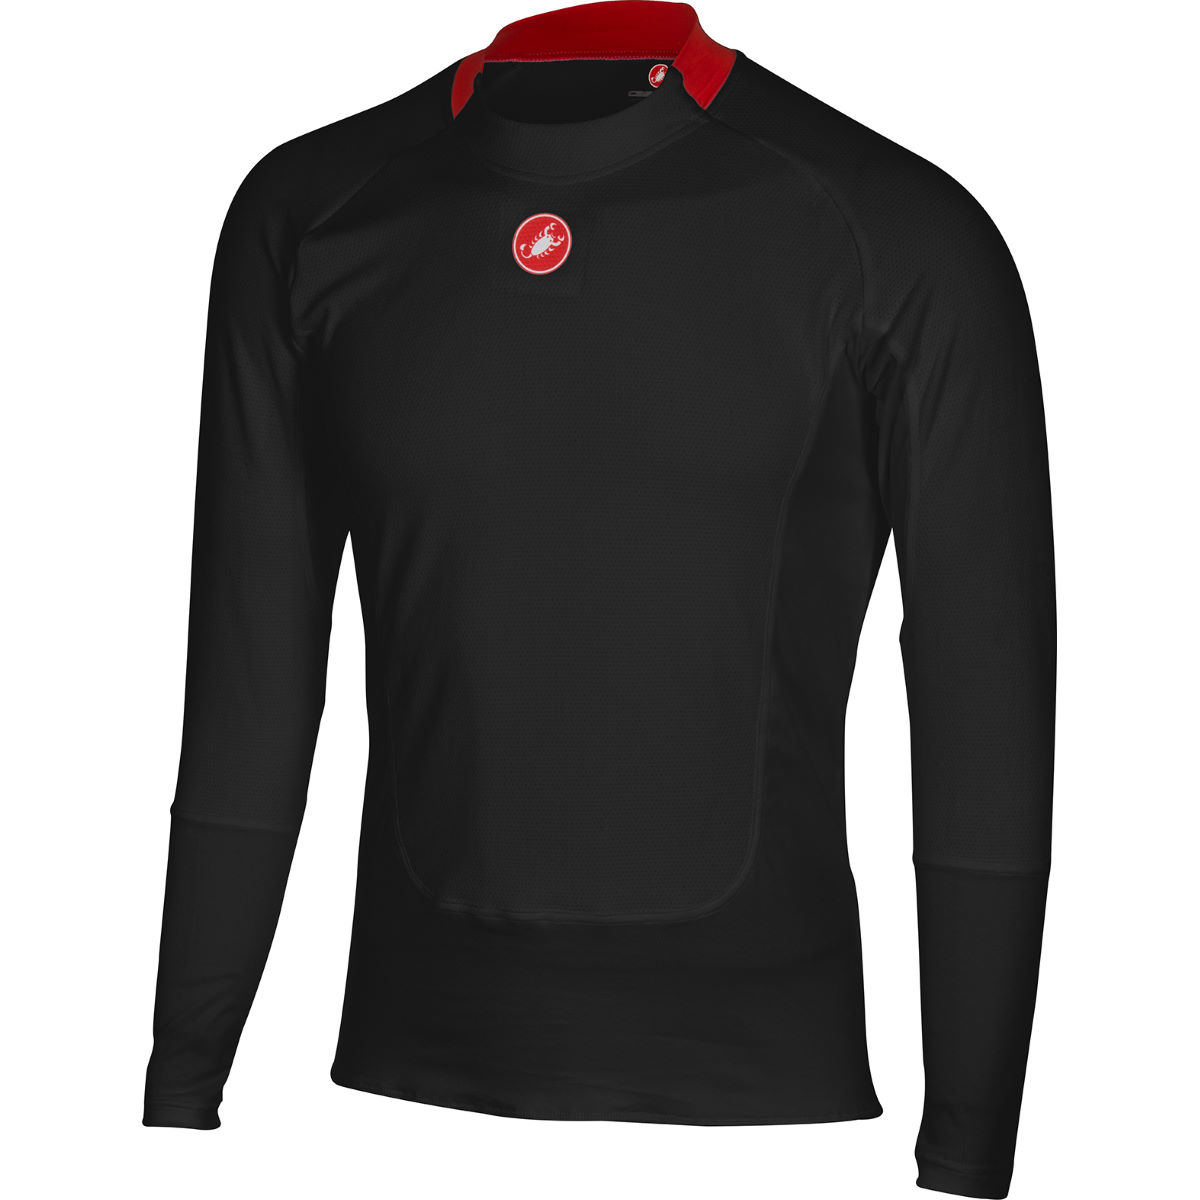 Castelli Prosecco Long Sleeve Base Layer - X Small Black | Base Layers